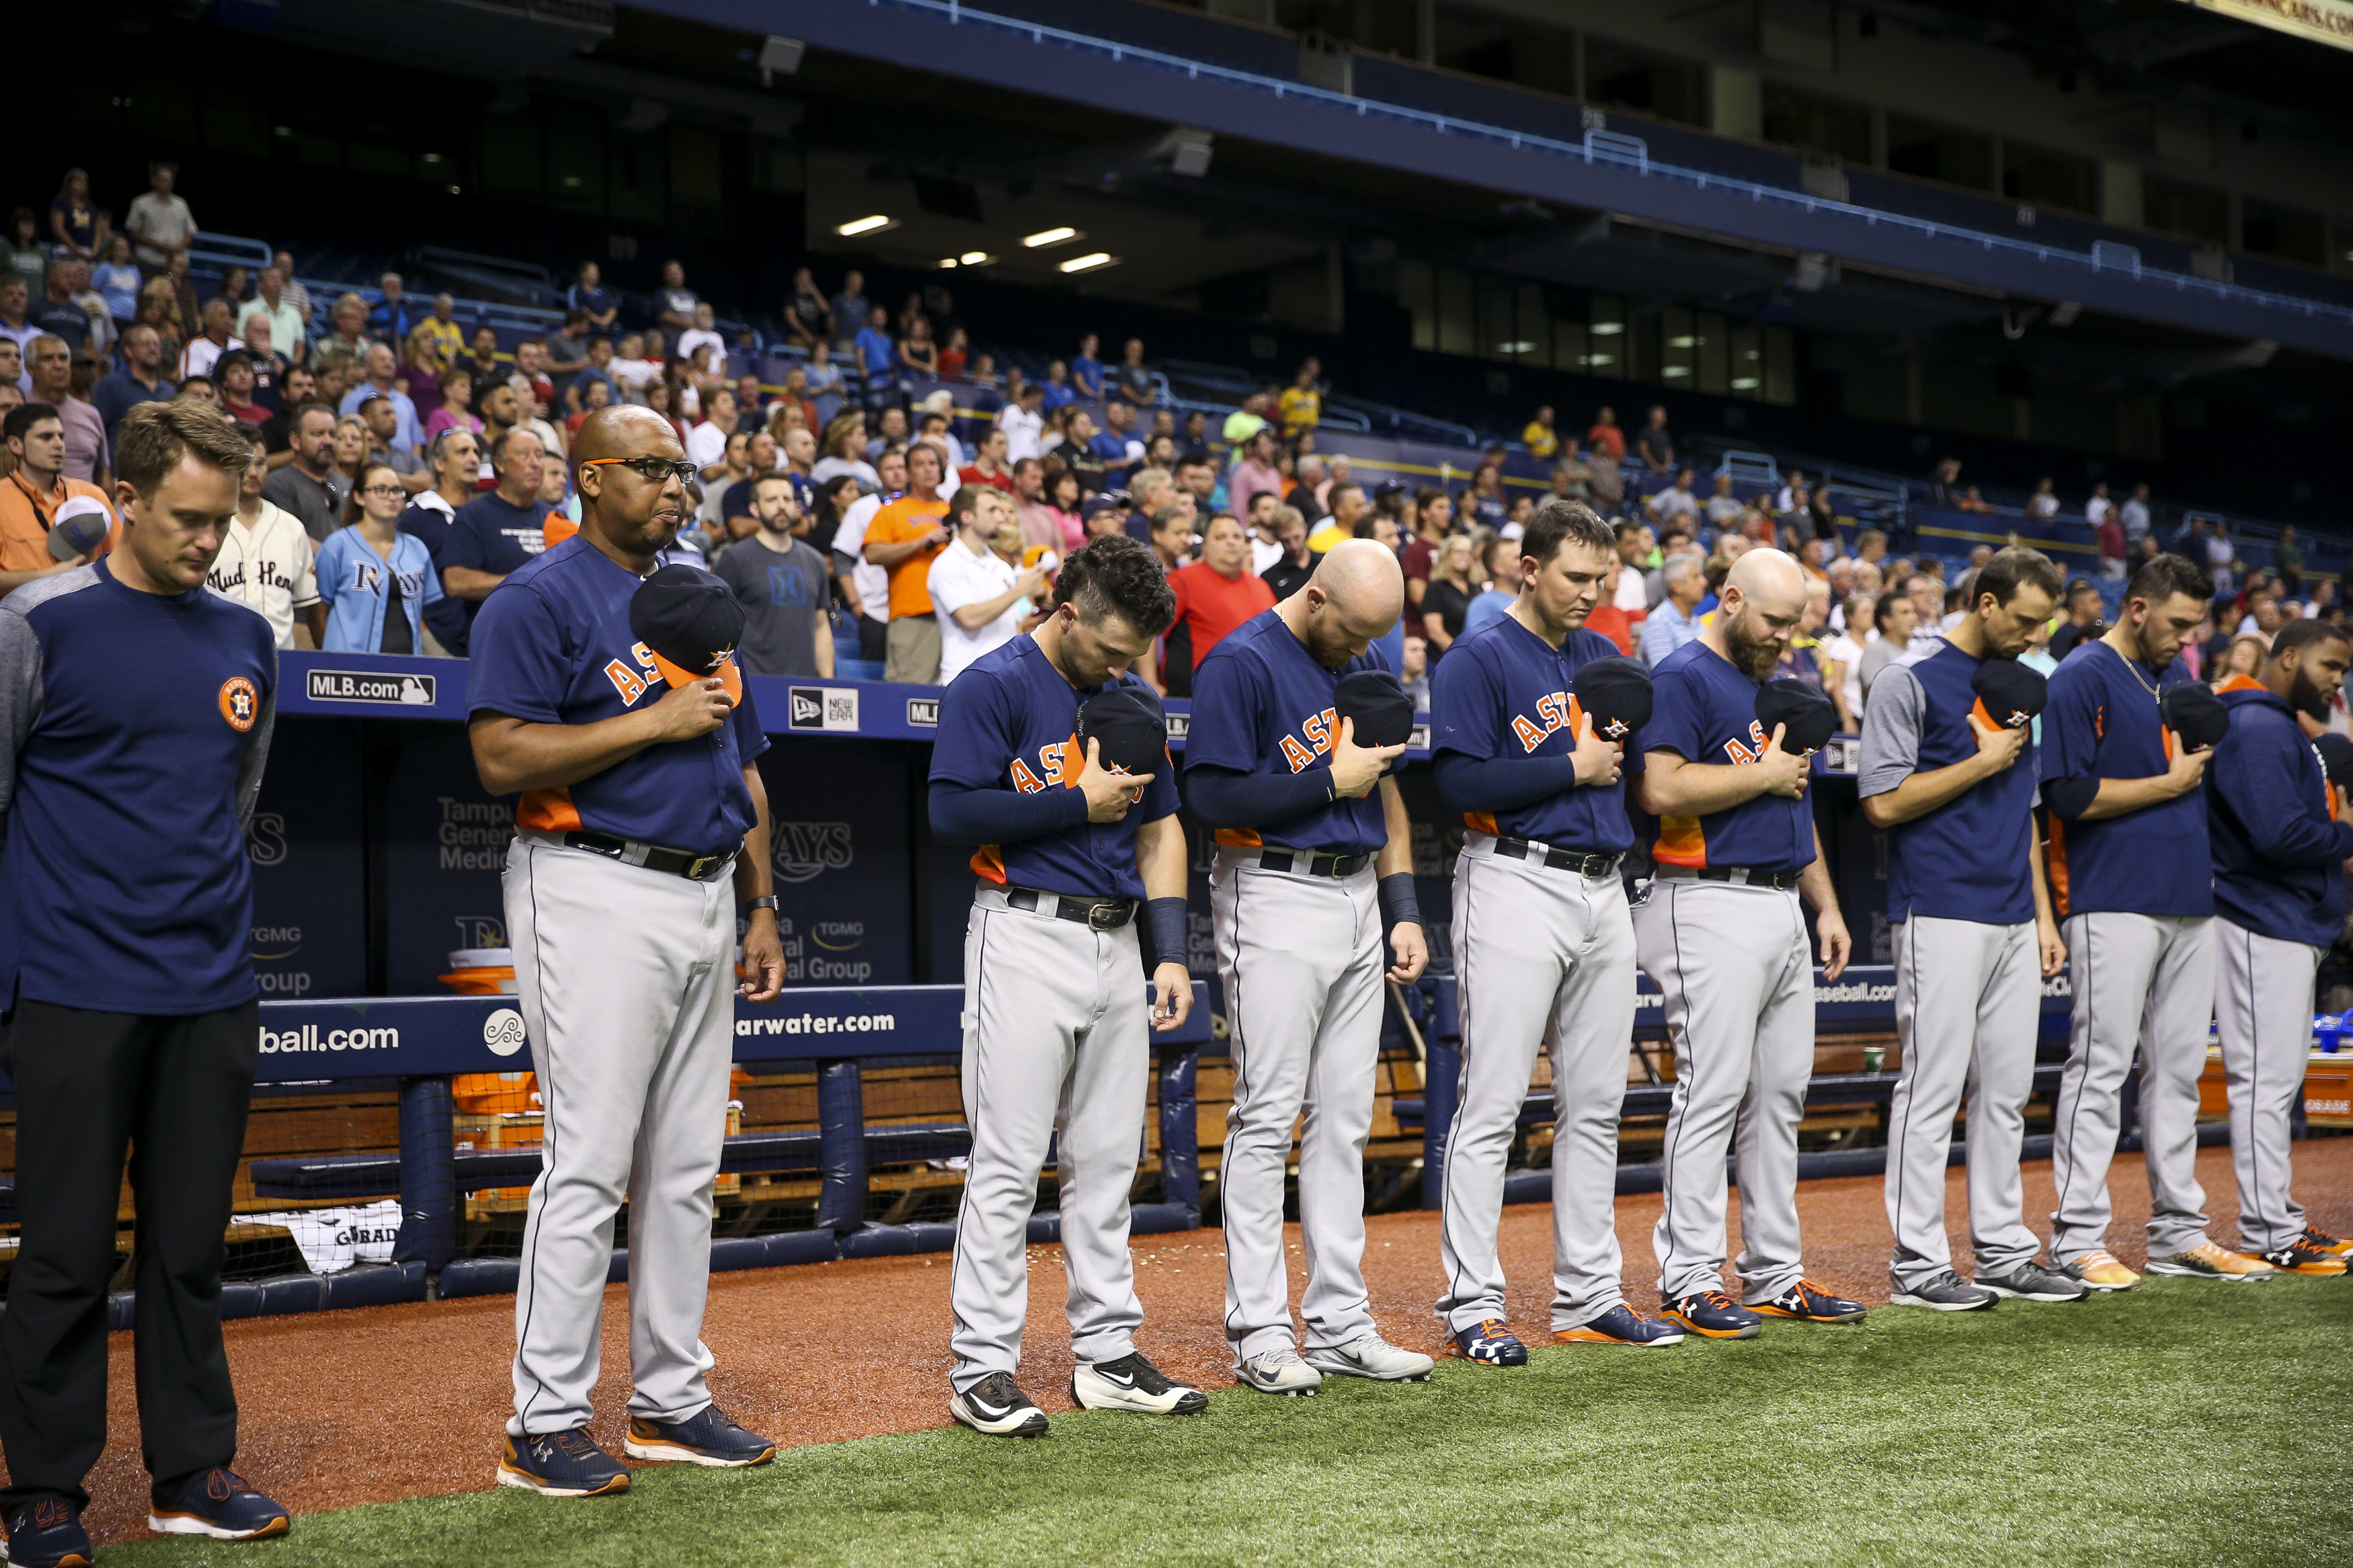 The Houston Astros pause for a moment of silence honoring the people of Houston, reeling from the effects of Hurricane Harvey, prior to a game against the Texas Rangers at Tropicana Field in St. Petersburg, Fla., on Tuesday, Aug. 29, 2017. (Will Vragovic/Tampa Bay Times/TNS)